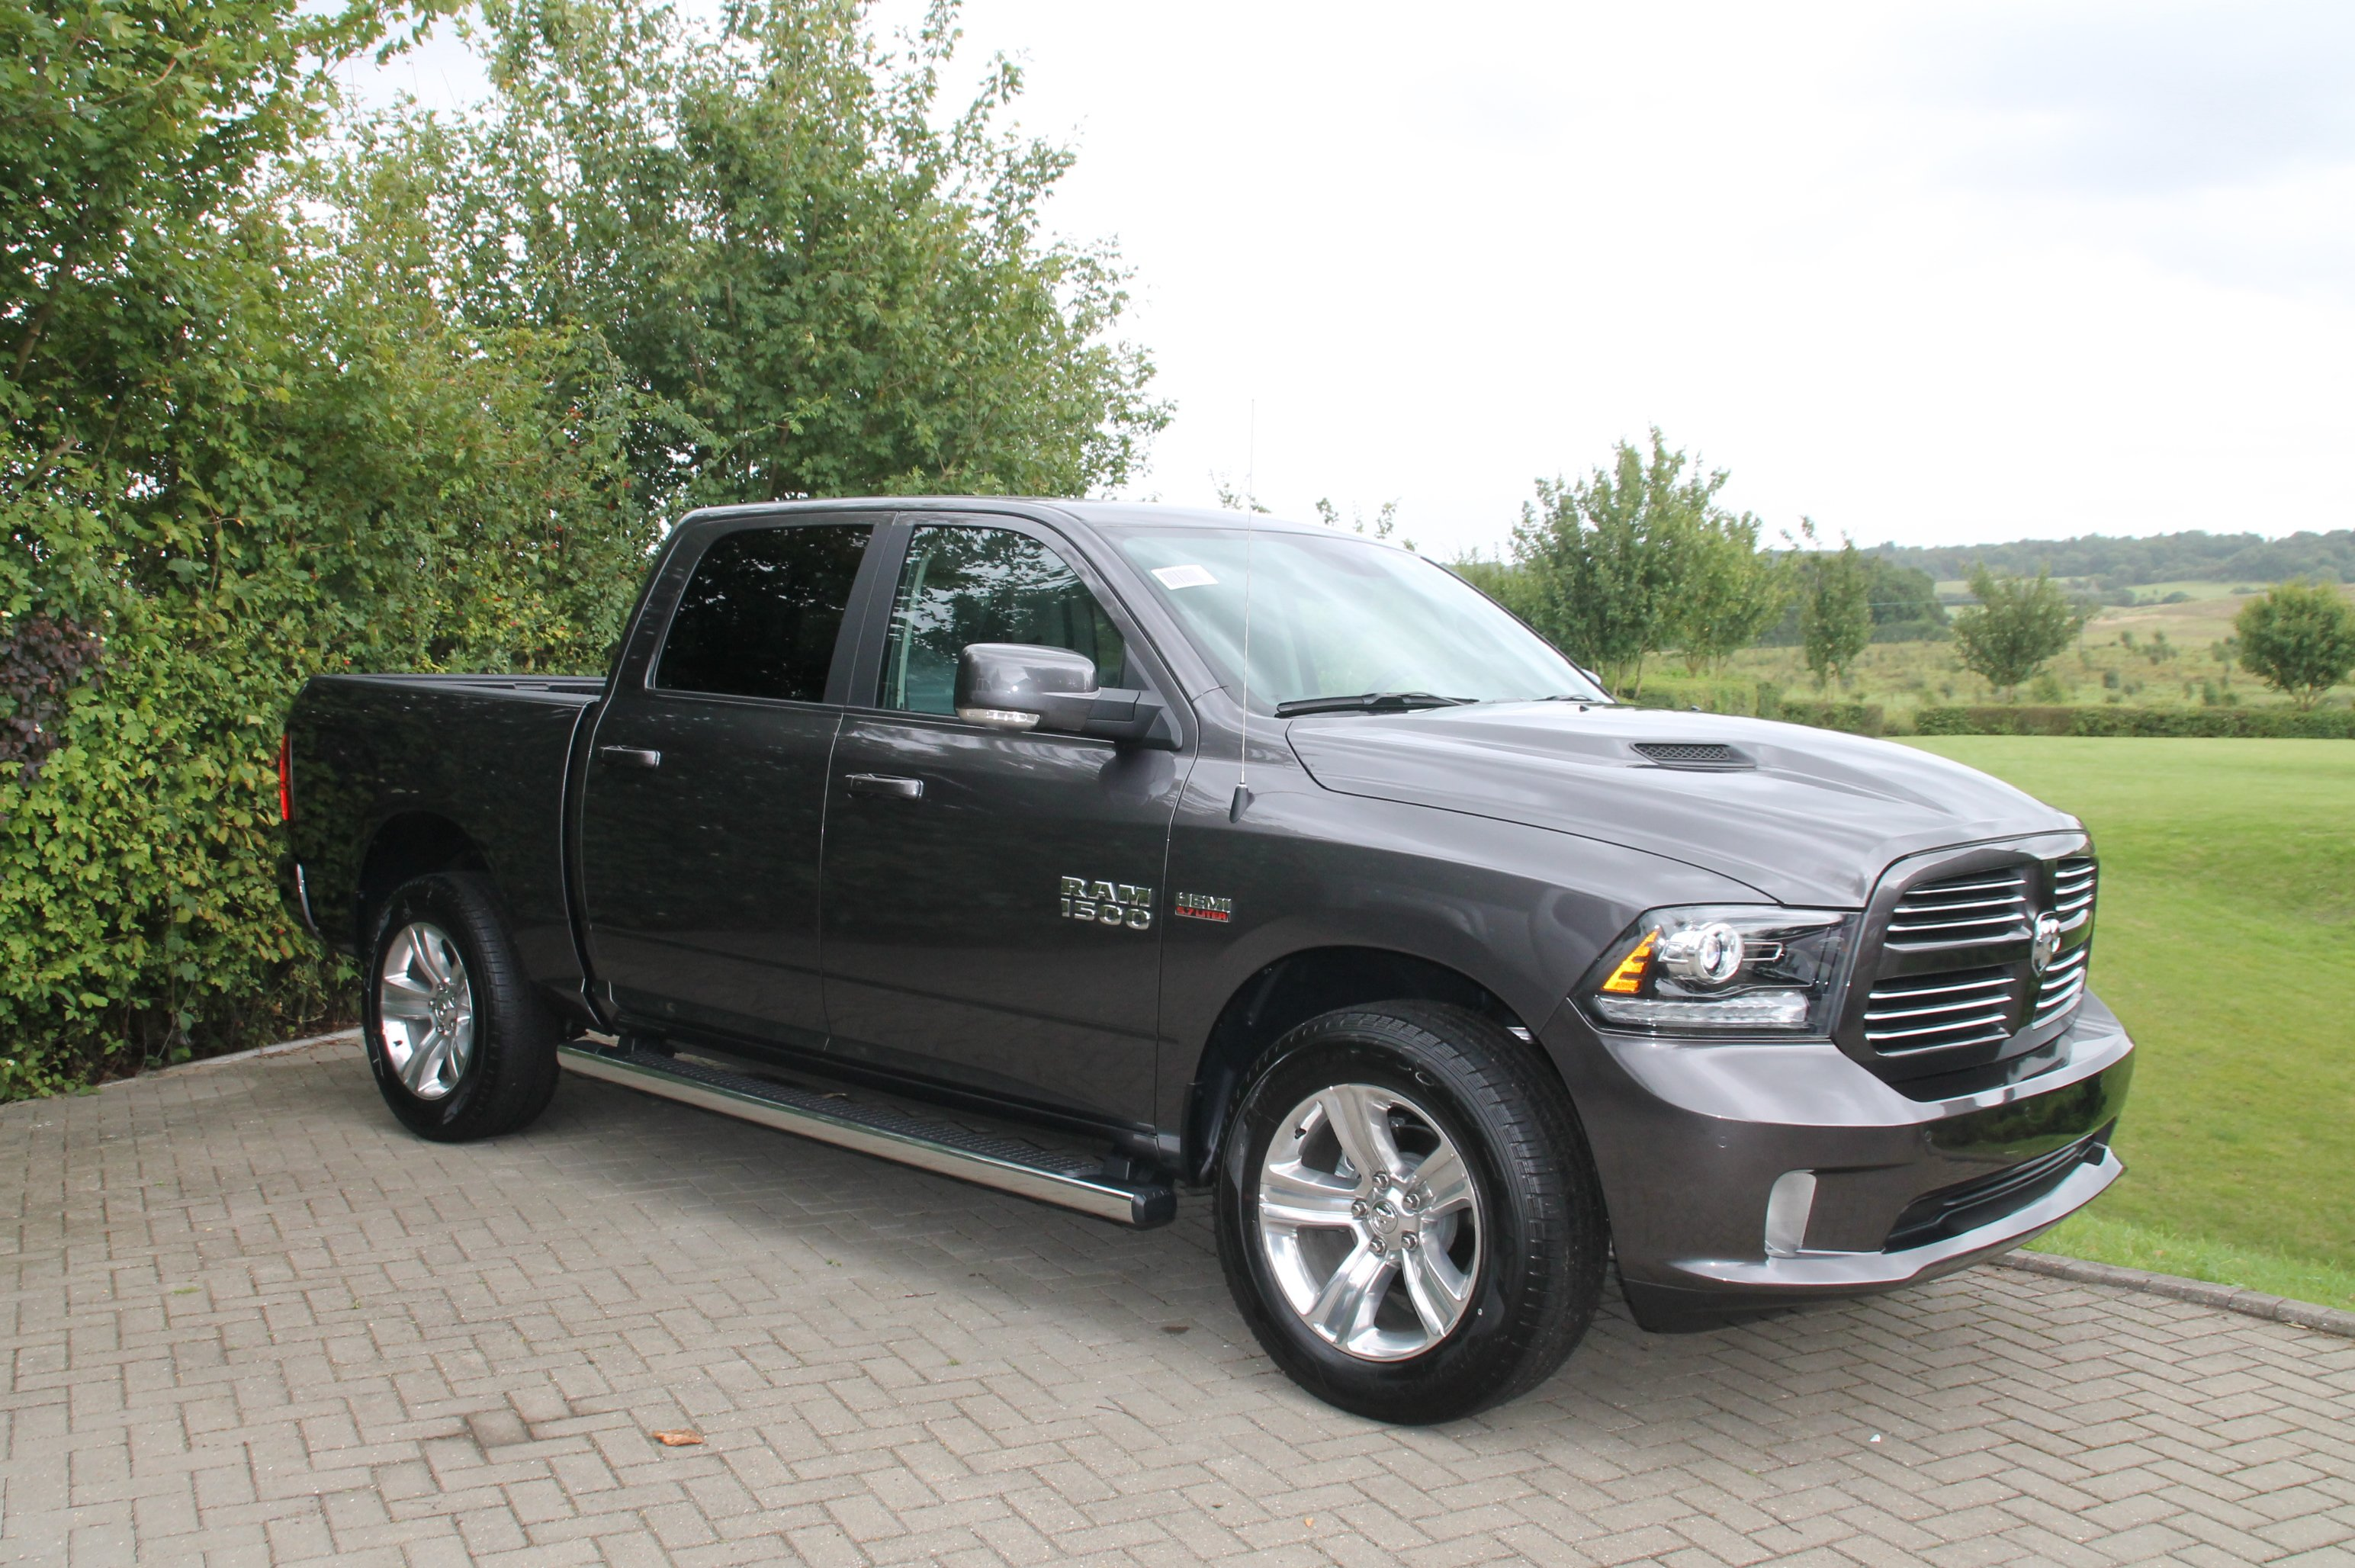 2017 dodge ram 1500 crew cab sport 51st state autos. Black Bedroom Furniture Sets. Home Design Ideas